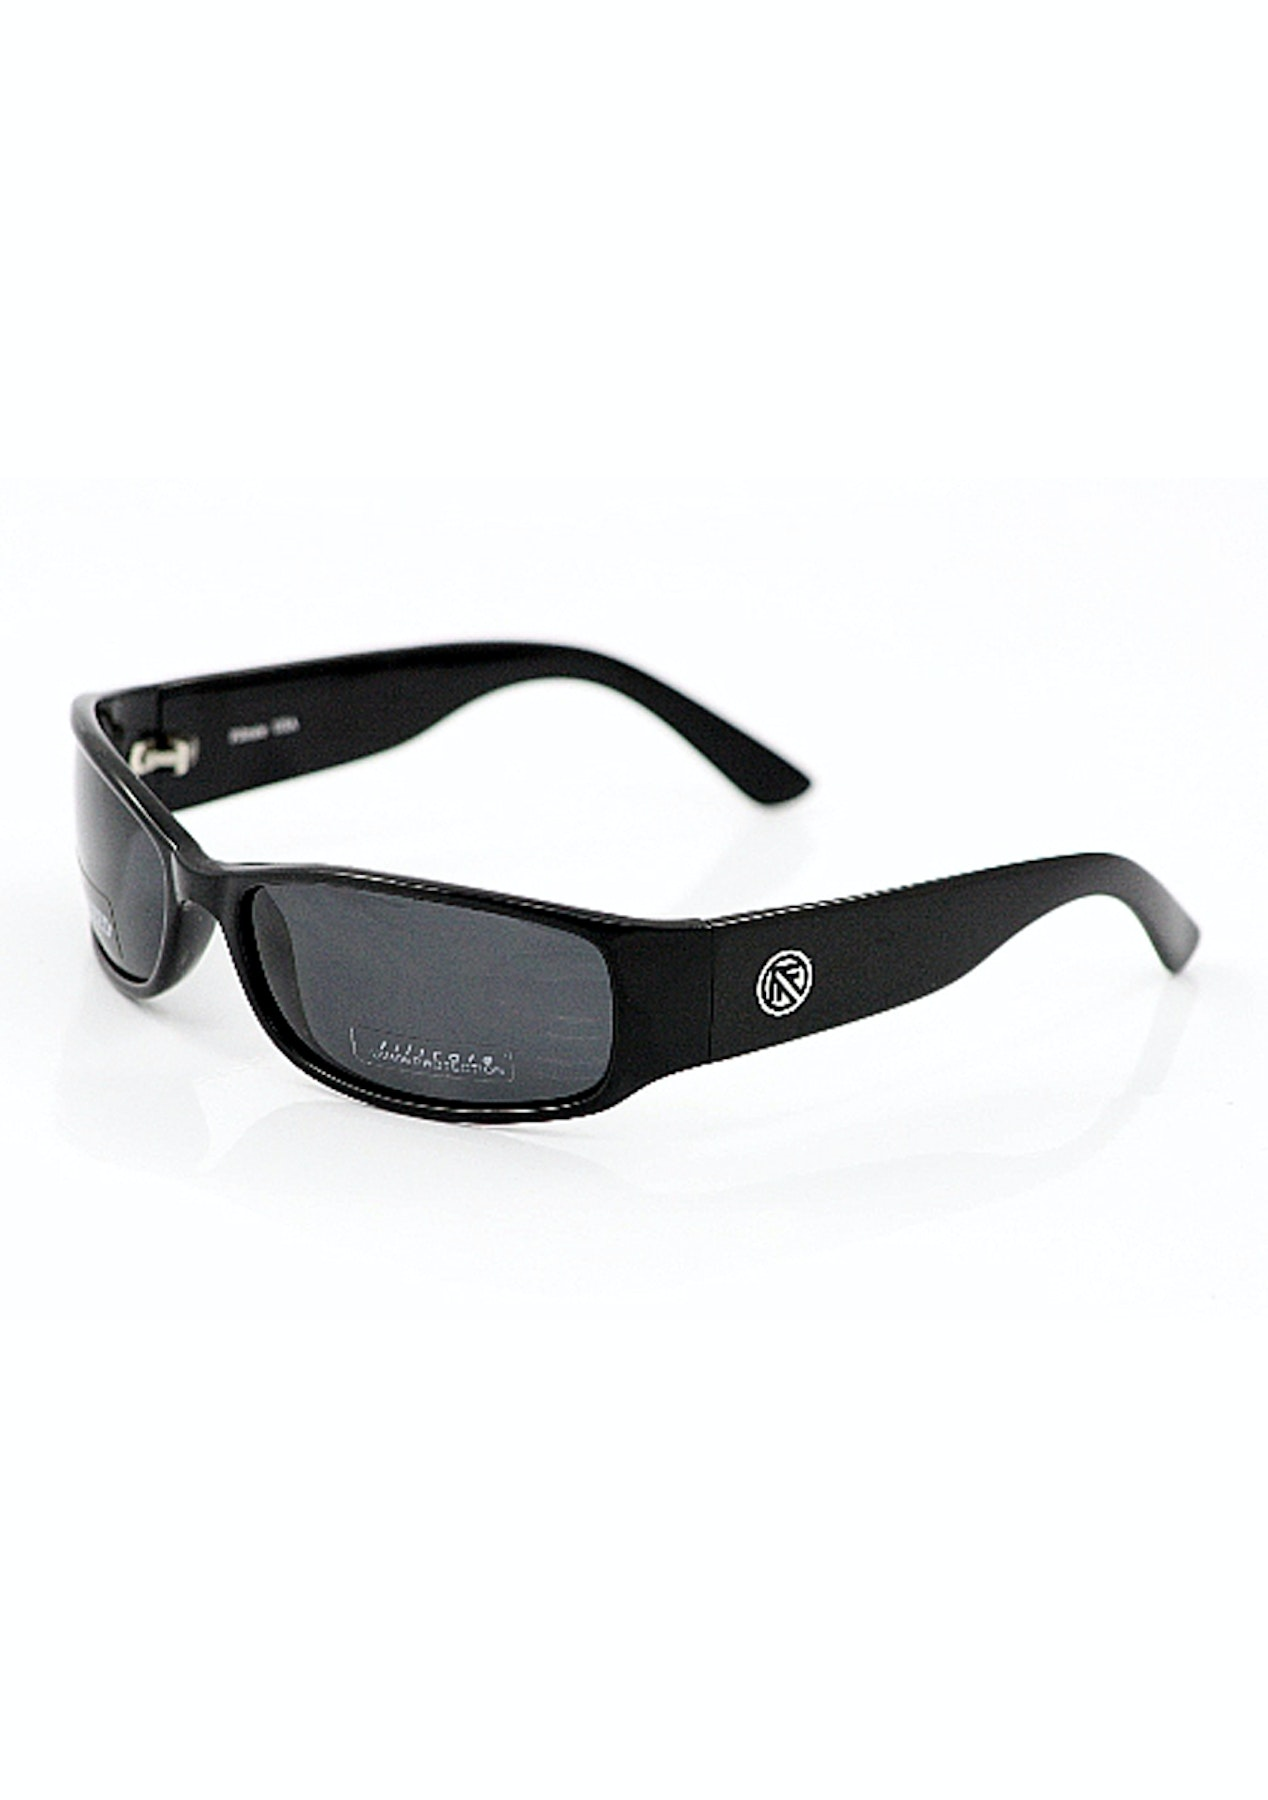 ec76e638d6767 Filtrate Ember Polarised Sunglasses - Brown Black - Sunglasses Super Sale  From  9.95 - Onceit